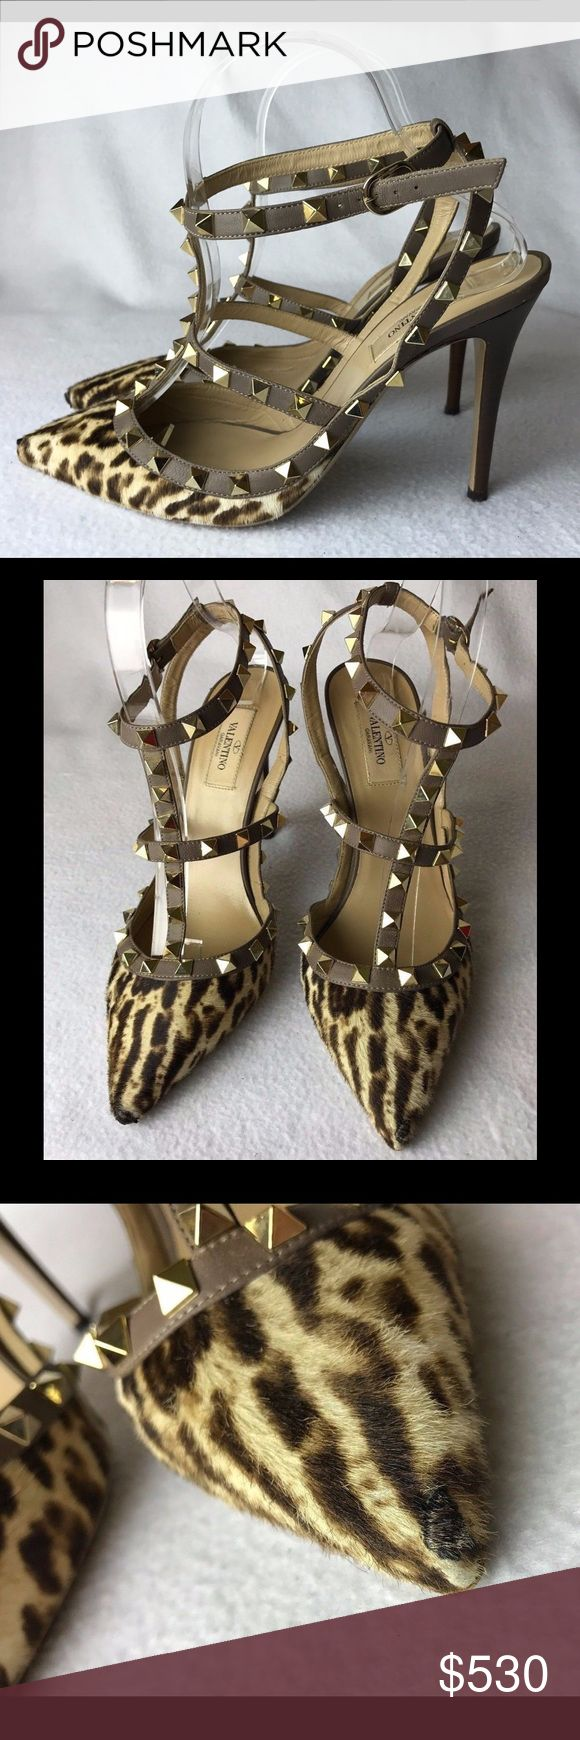 """FLASH SALE⚡️NO OFFERS⛔ Valentino Rockstud Pony 39 Good pre-loved condition. Heels made of wood. Some minor color fading at the backs.  Normal scuffing on sole from wear. All studs on their places. Scuffs on both toes, repaired (glued) but still visible at closer look. Look great on foot!!  Come with original dust bag, NO box, no spare heels or studs. No receipt is kept.    Insole is 10.3"""" Heel is 4.33'' Valentino Garavani Shoes Heels"""